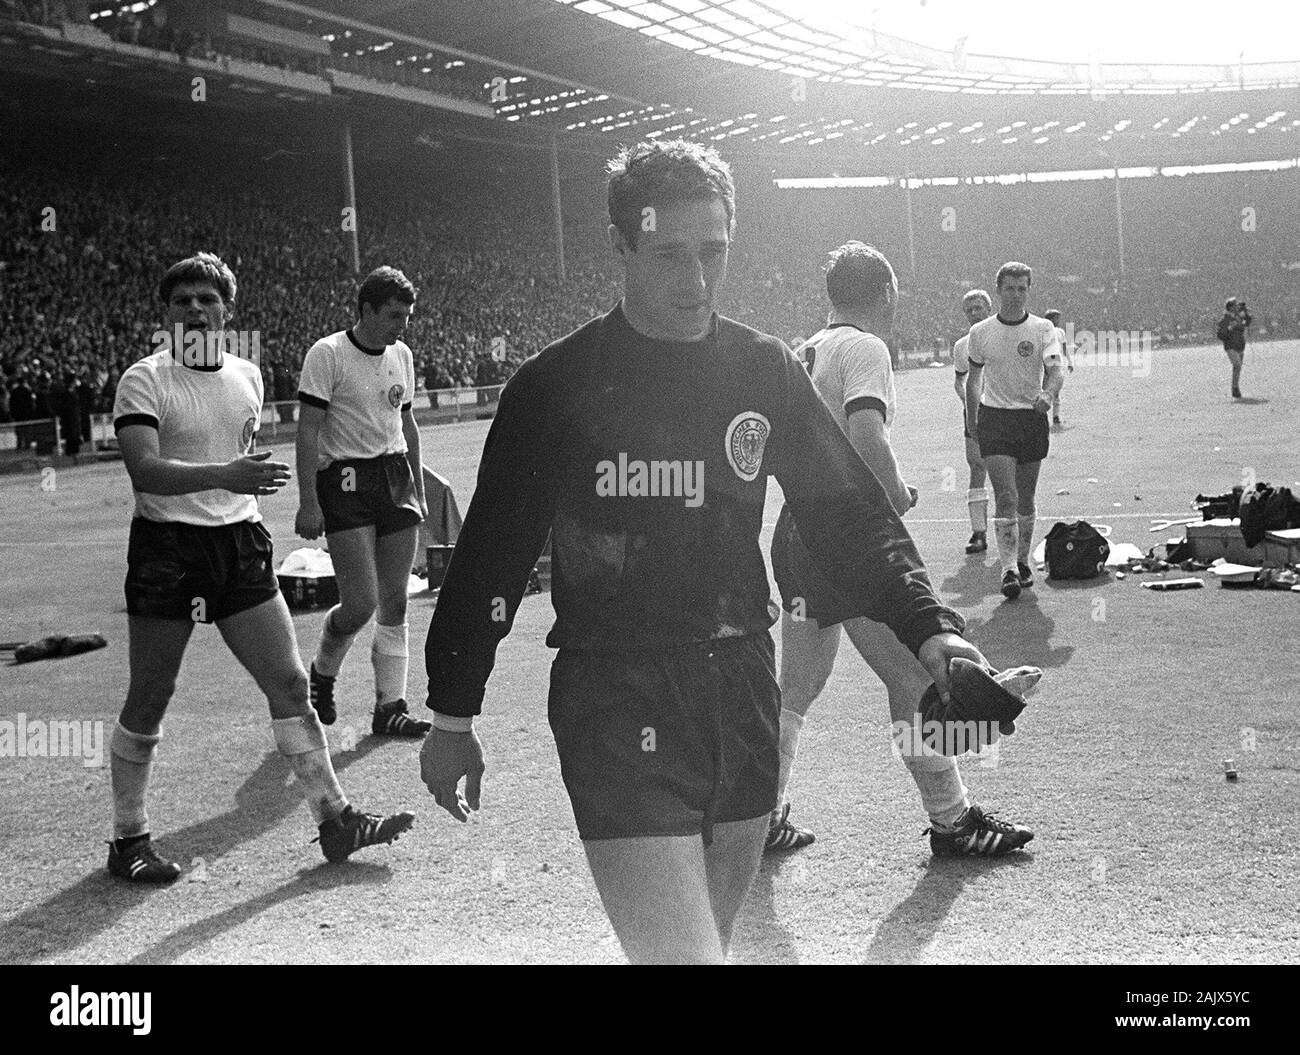 London, Deutschland. 06th Jan, 2020. goalkeeping legend Hans TILKOWSKI passed away at the age of 84, archive photo; Final game of the 1966 World Cup in London's Wembley Stadium England - Federal Republic of Germany 4: 3, the German players leave the field, front goalwart Hans TILKOWSKI, landscape format, SW recording, July 30, 1966. | usage worldwide Credit: dpa/Alamy Live News Stock Photo